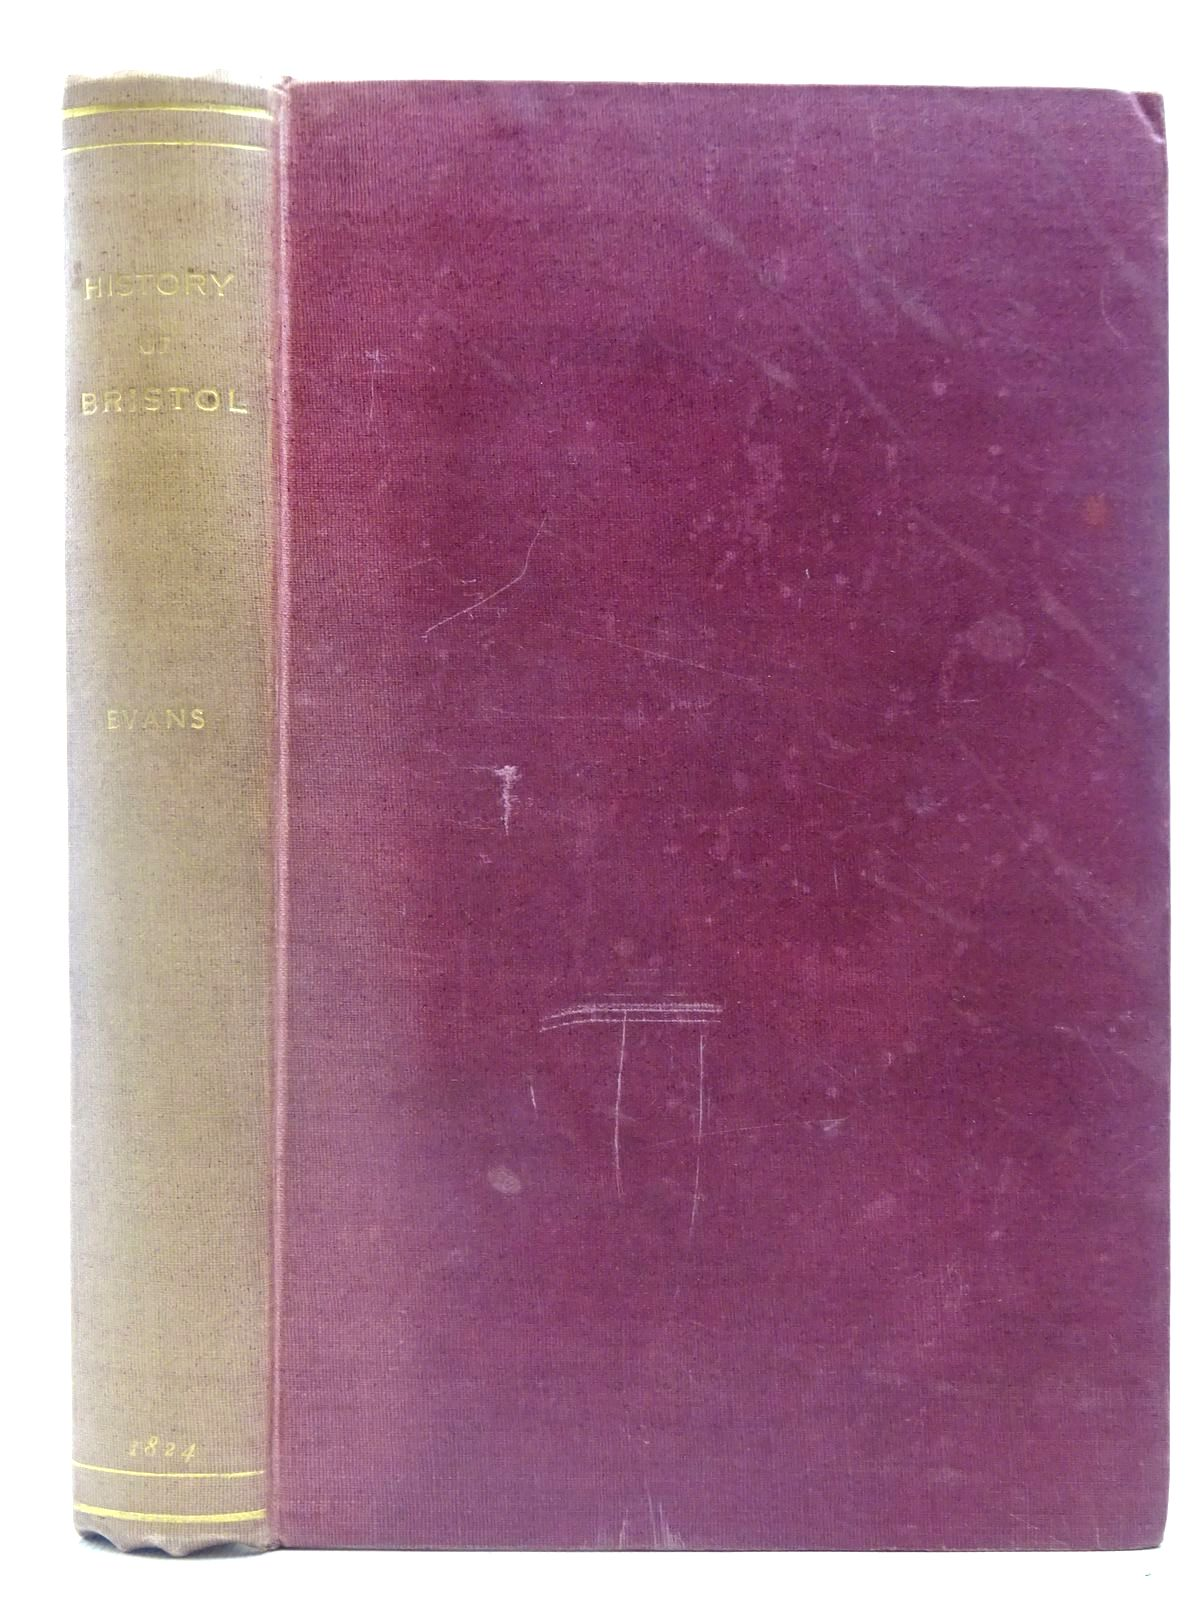 Photo of A CHRONOLOGICAL OUTLINE OF THE HISTORY OF BRISTOL written by Evans, John published by G. And W.B. Whittaker (STOCK CODE: 2127055)  for sale by Stella & Rose's Books